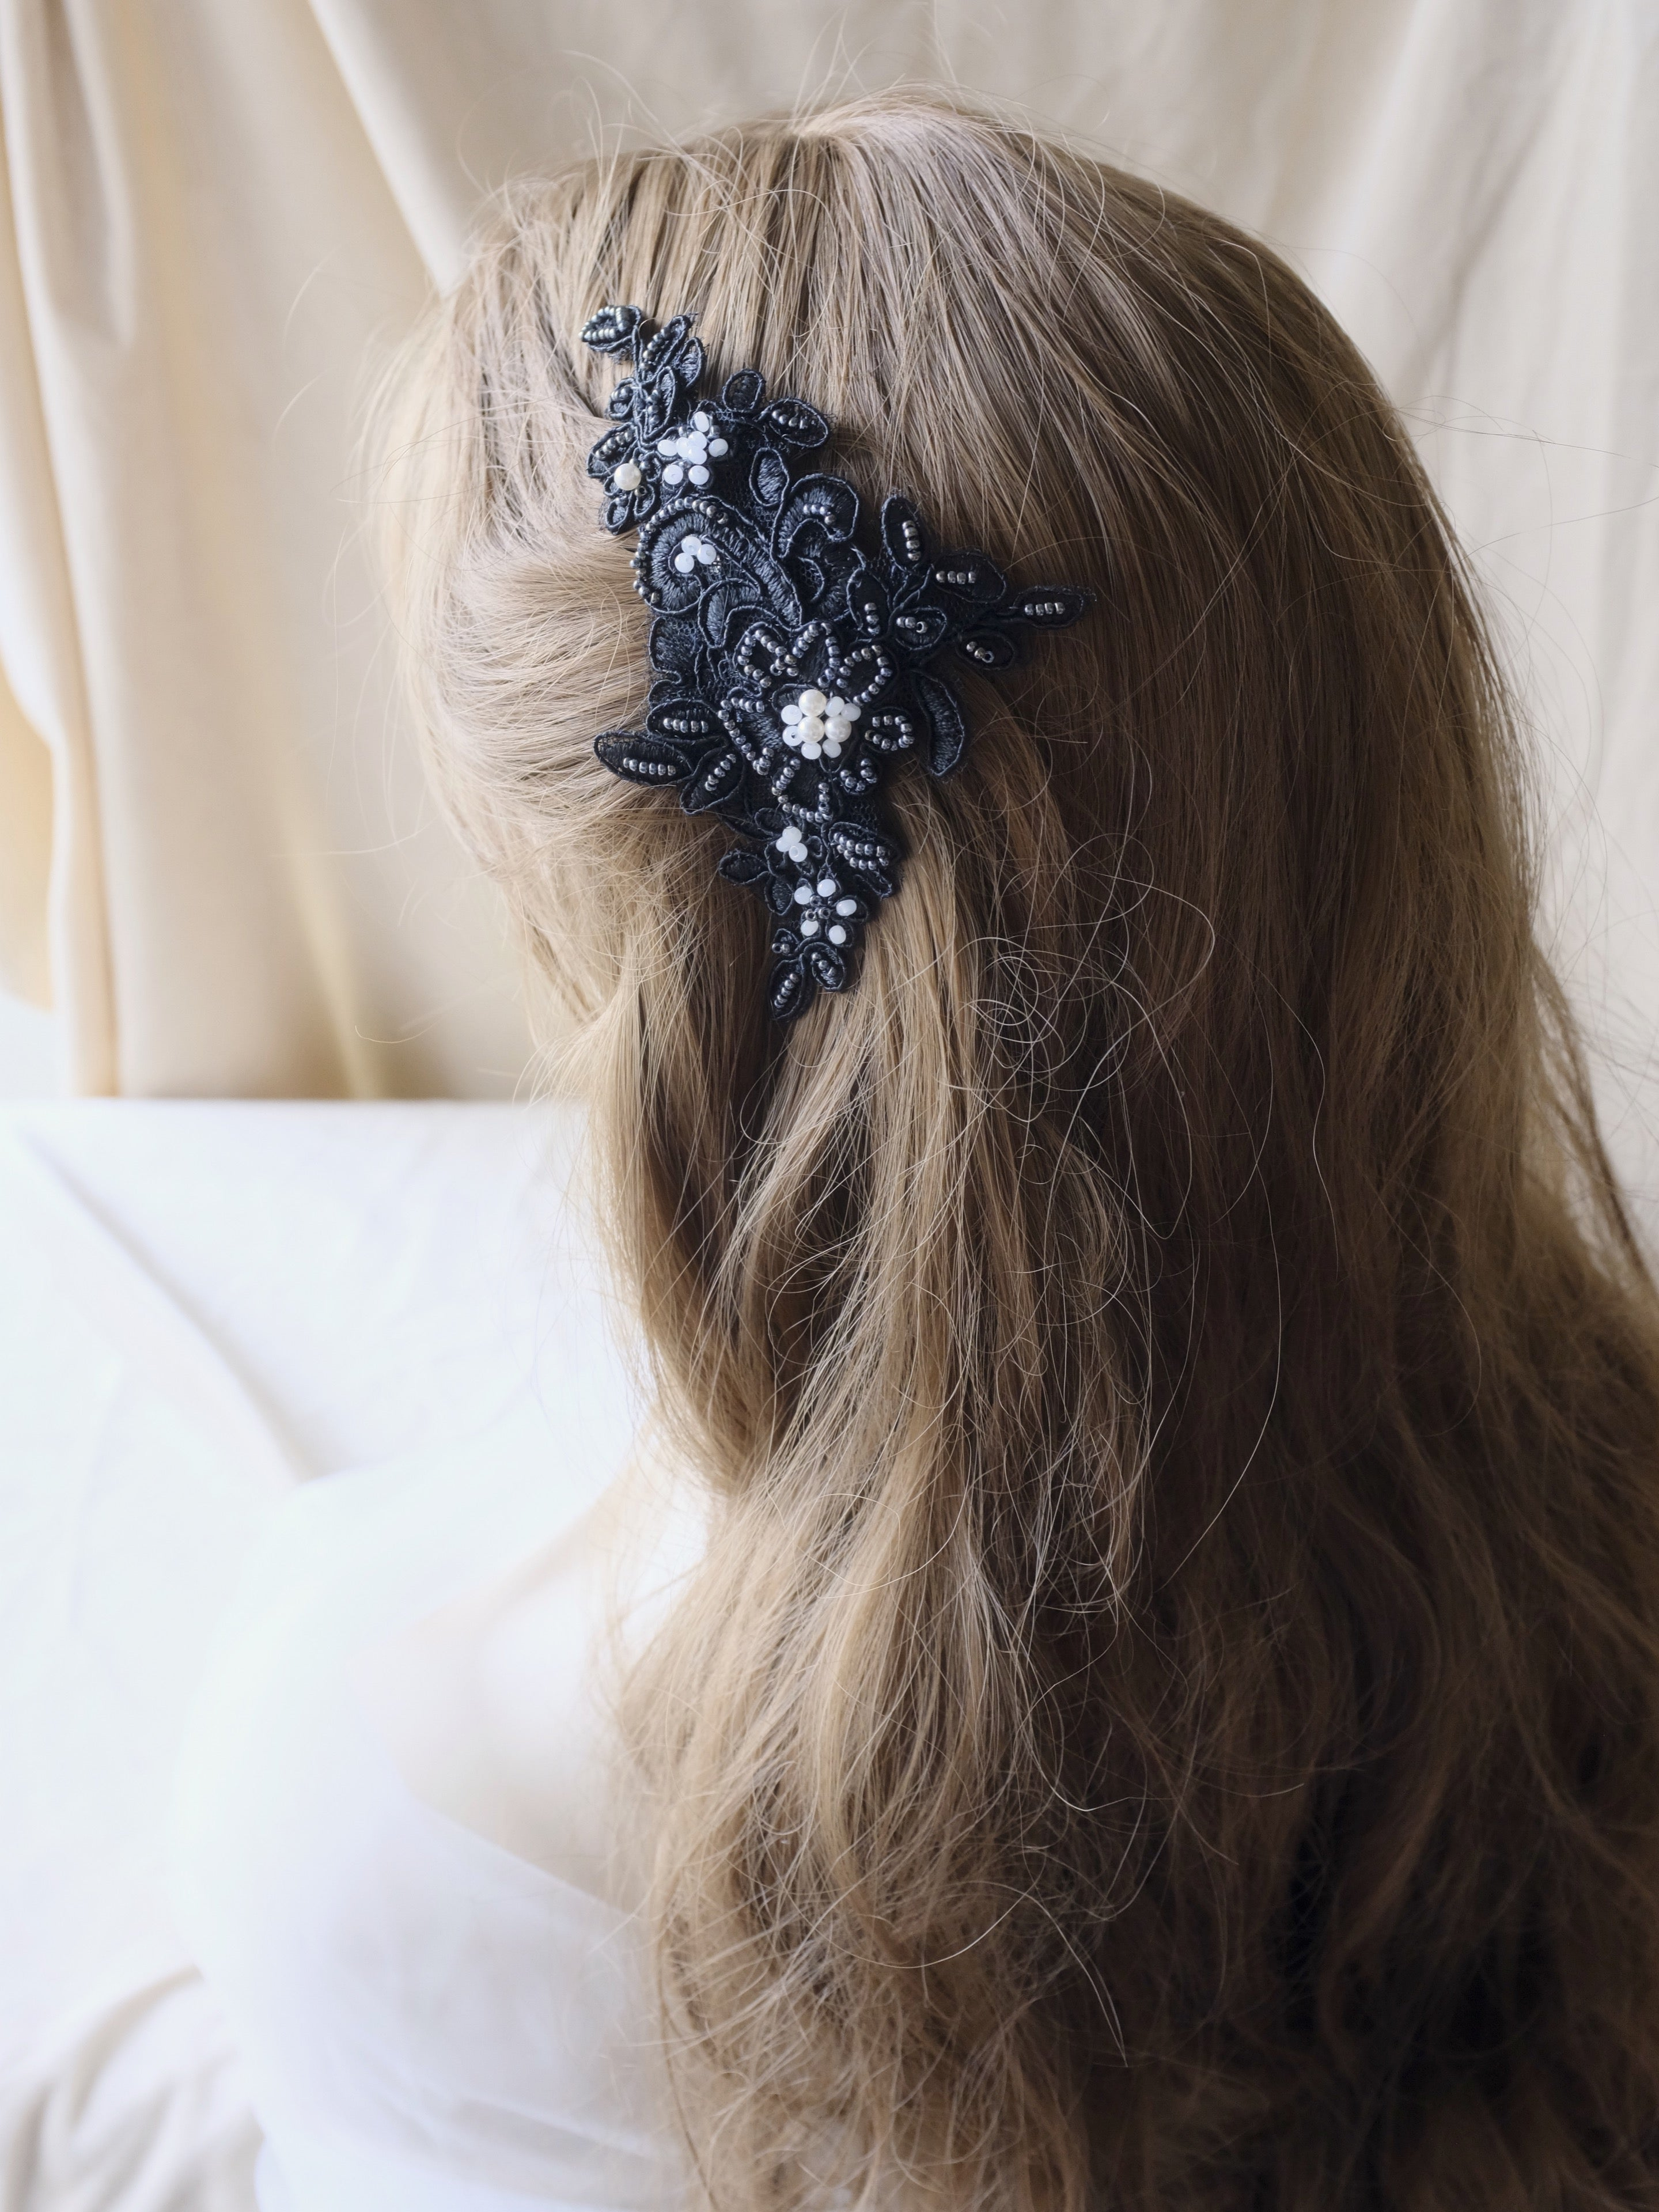 Black wedding hair accessories, beaded lace hair comb for bride